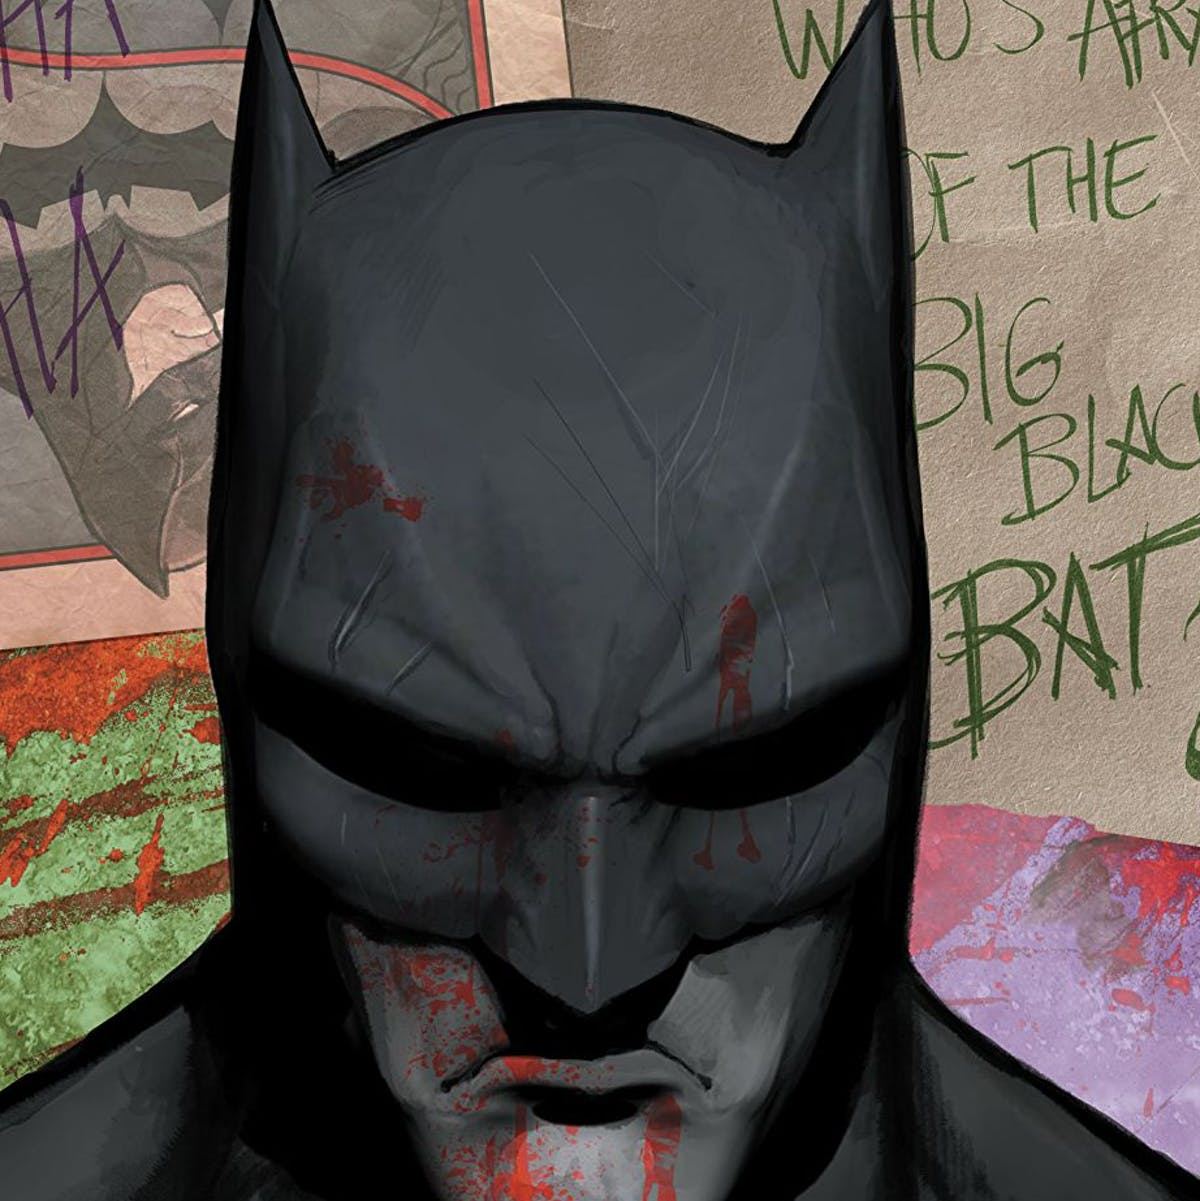 'Batman' writer says his next DC Comics series is his 'Dark Knight Returns'